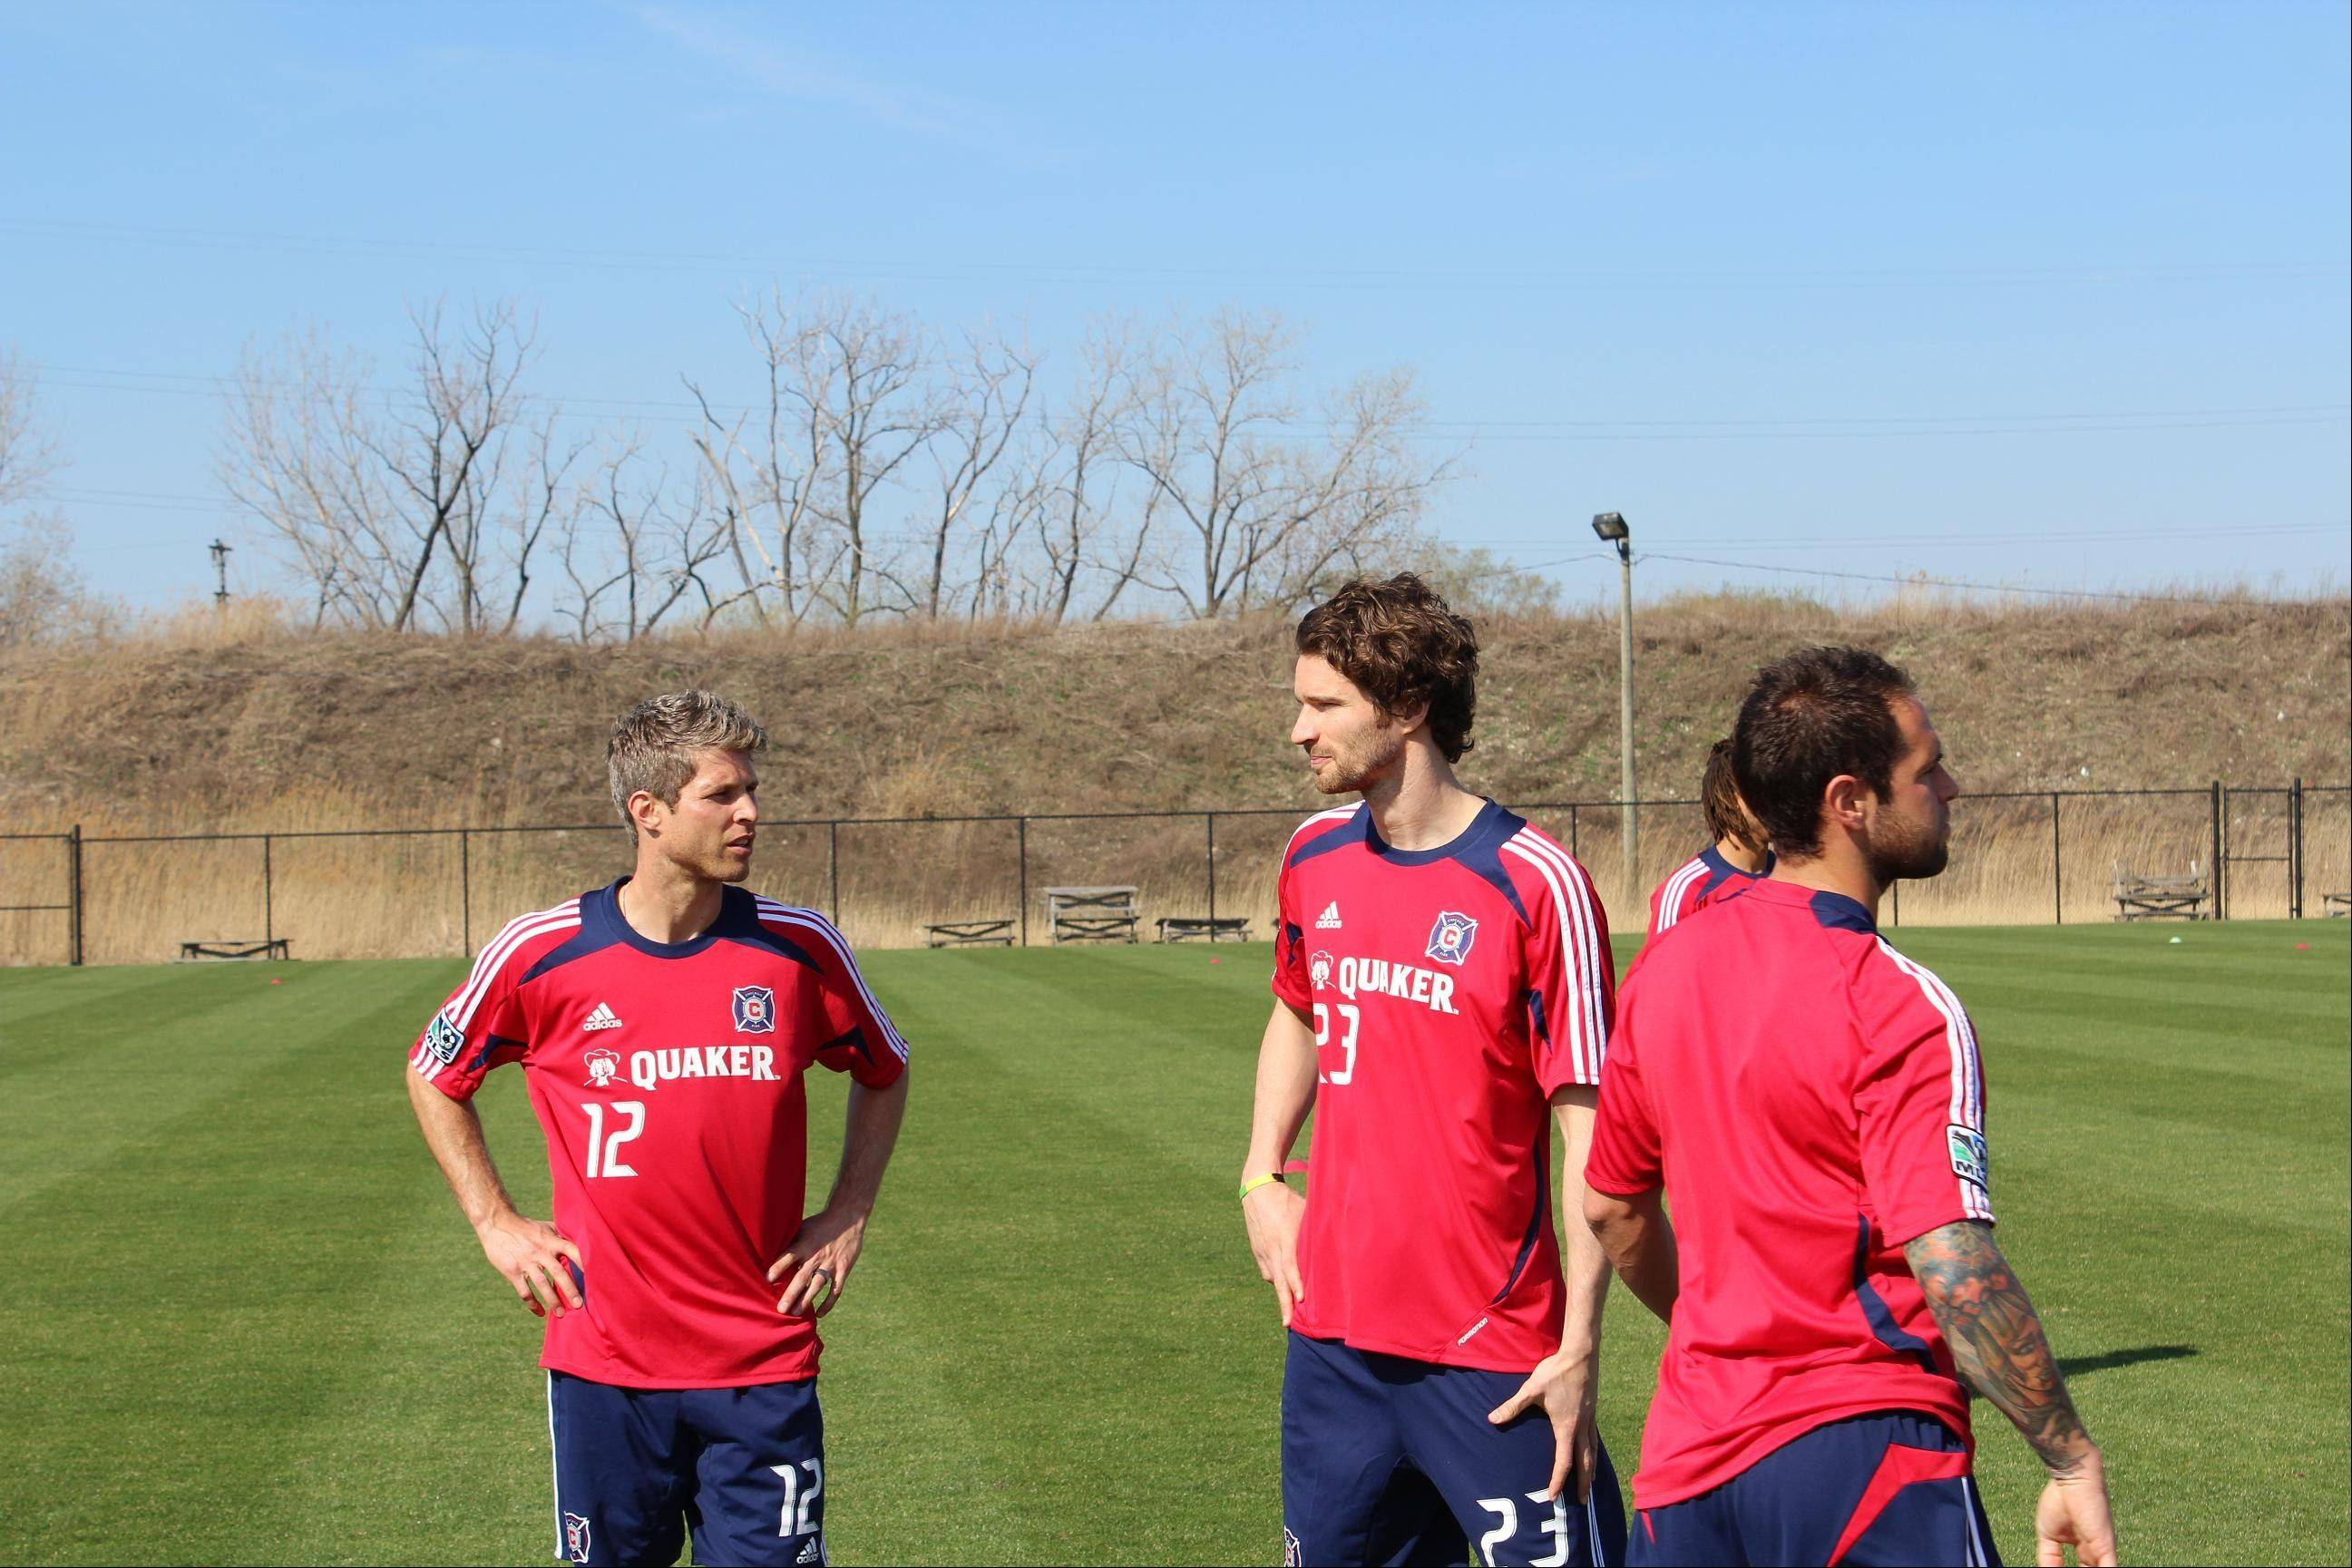 The Fire's Logan Pause, left, and German defender Arne Friedrich, center, get to know each other at practice Tuesday. Friedrich said former teammate Pavel Pardo only had good things to say about the club and playing in Chicago.